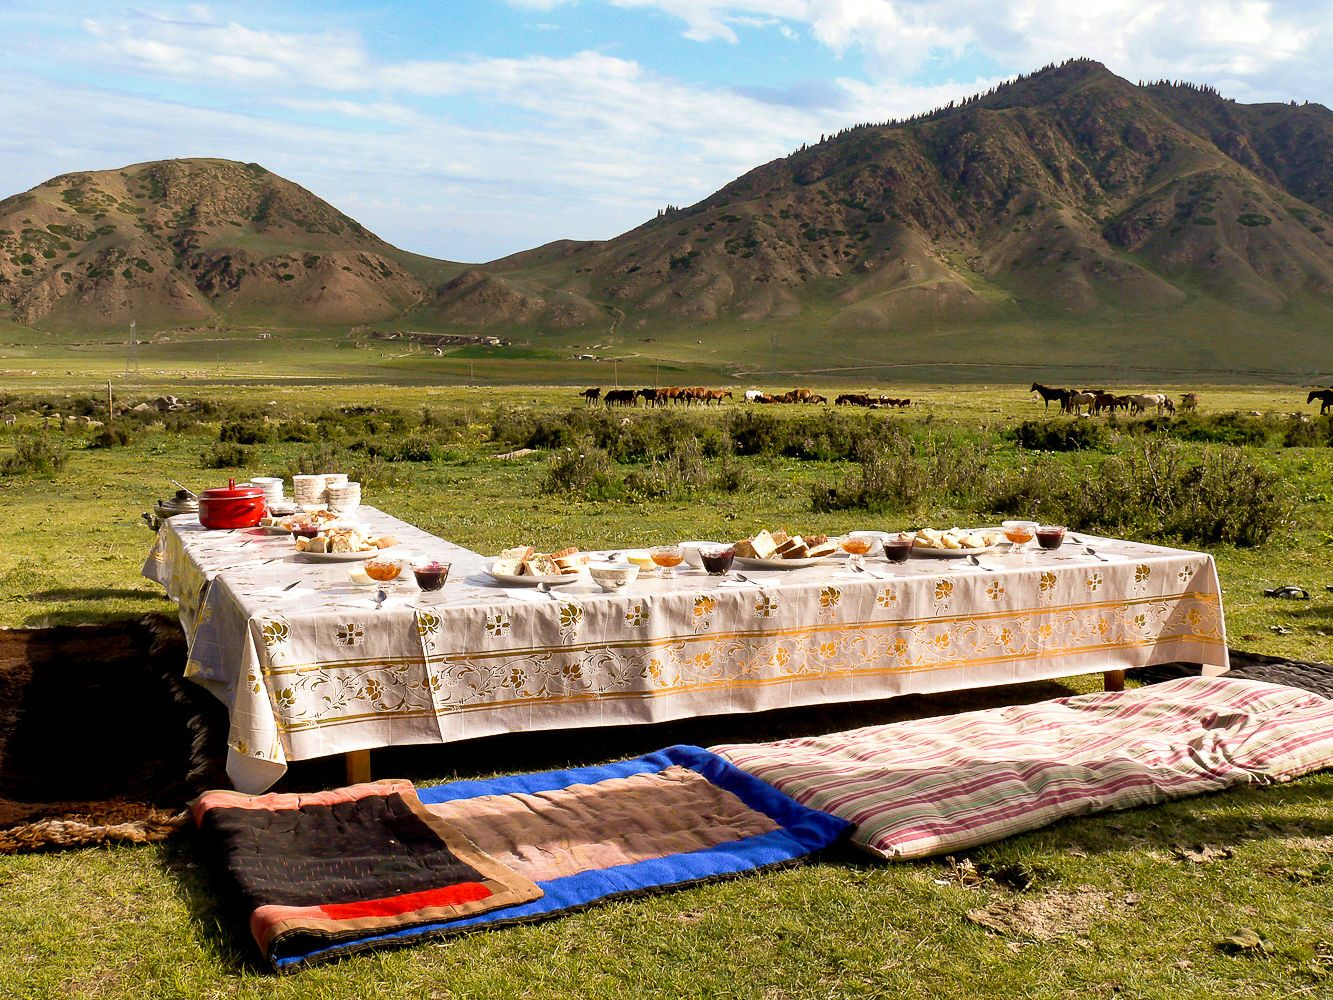 Table for breakfast in the mountains central Asia